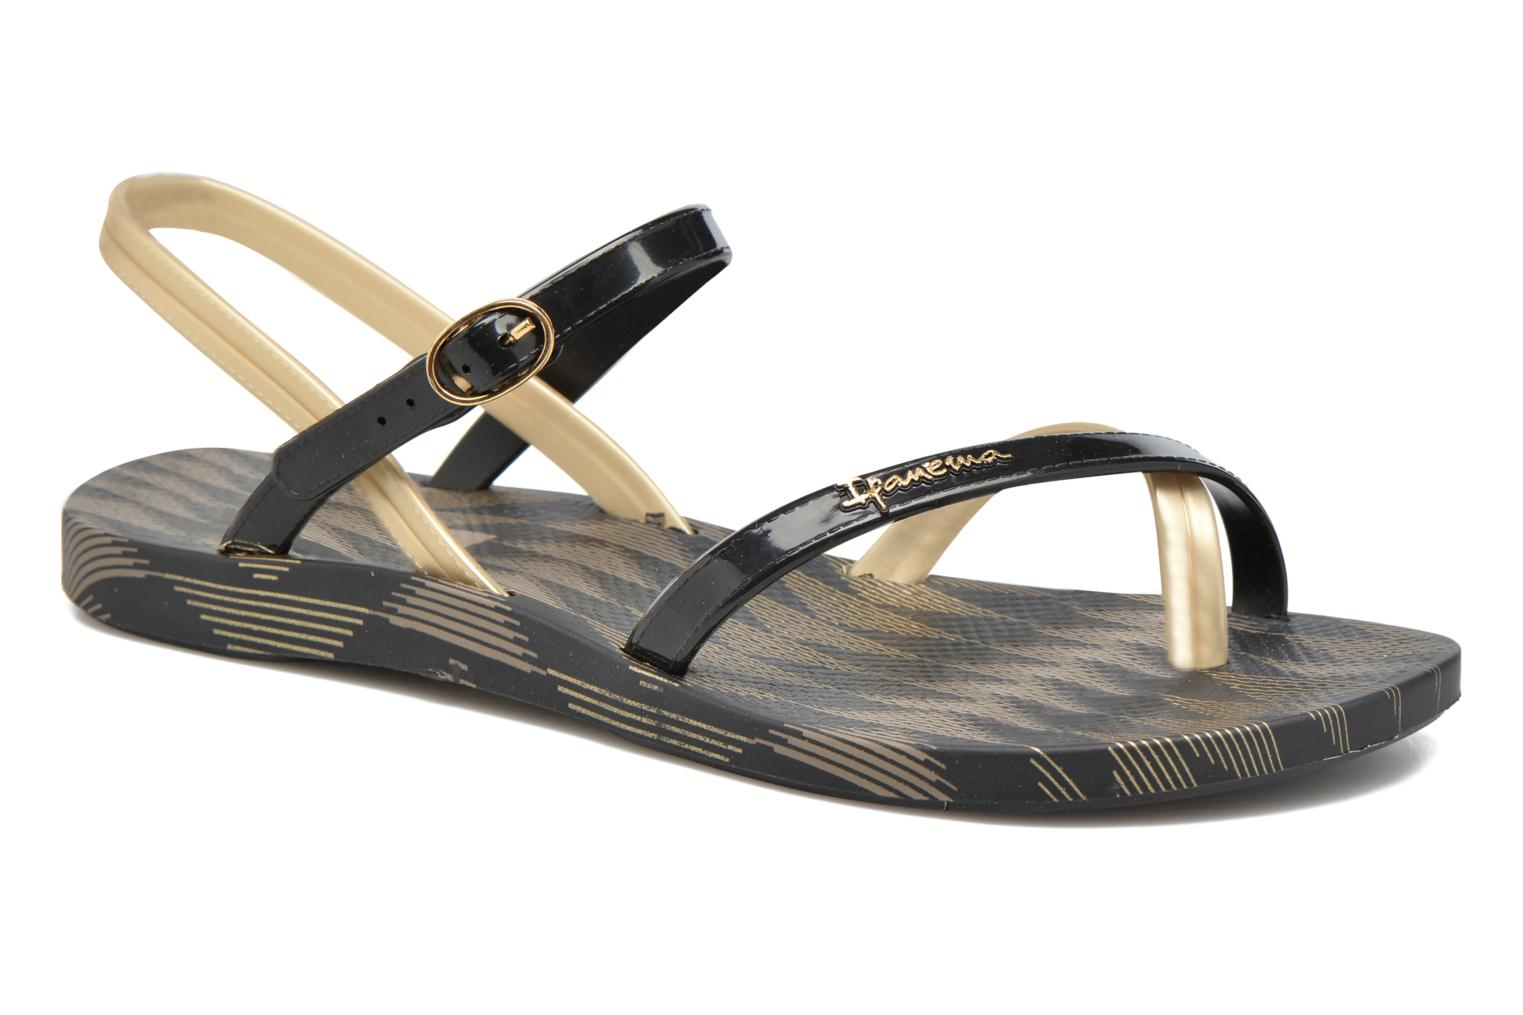 Fashion Sandal IV F Black/gold